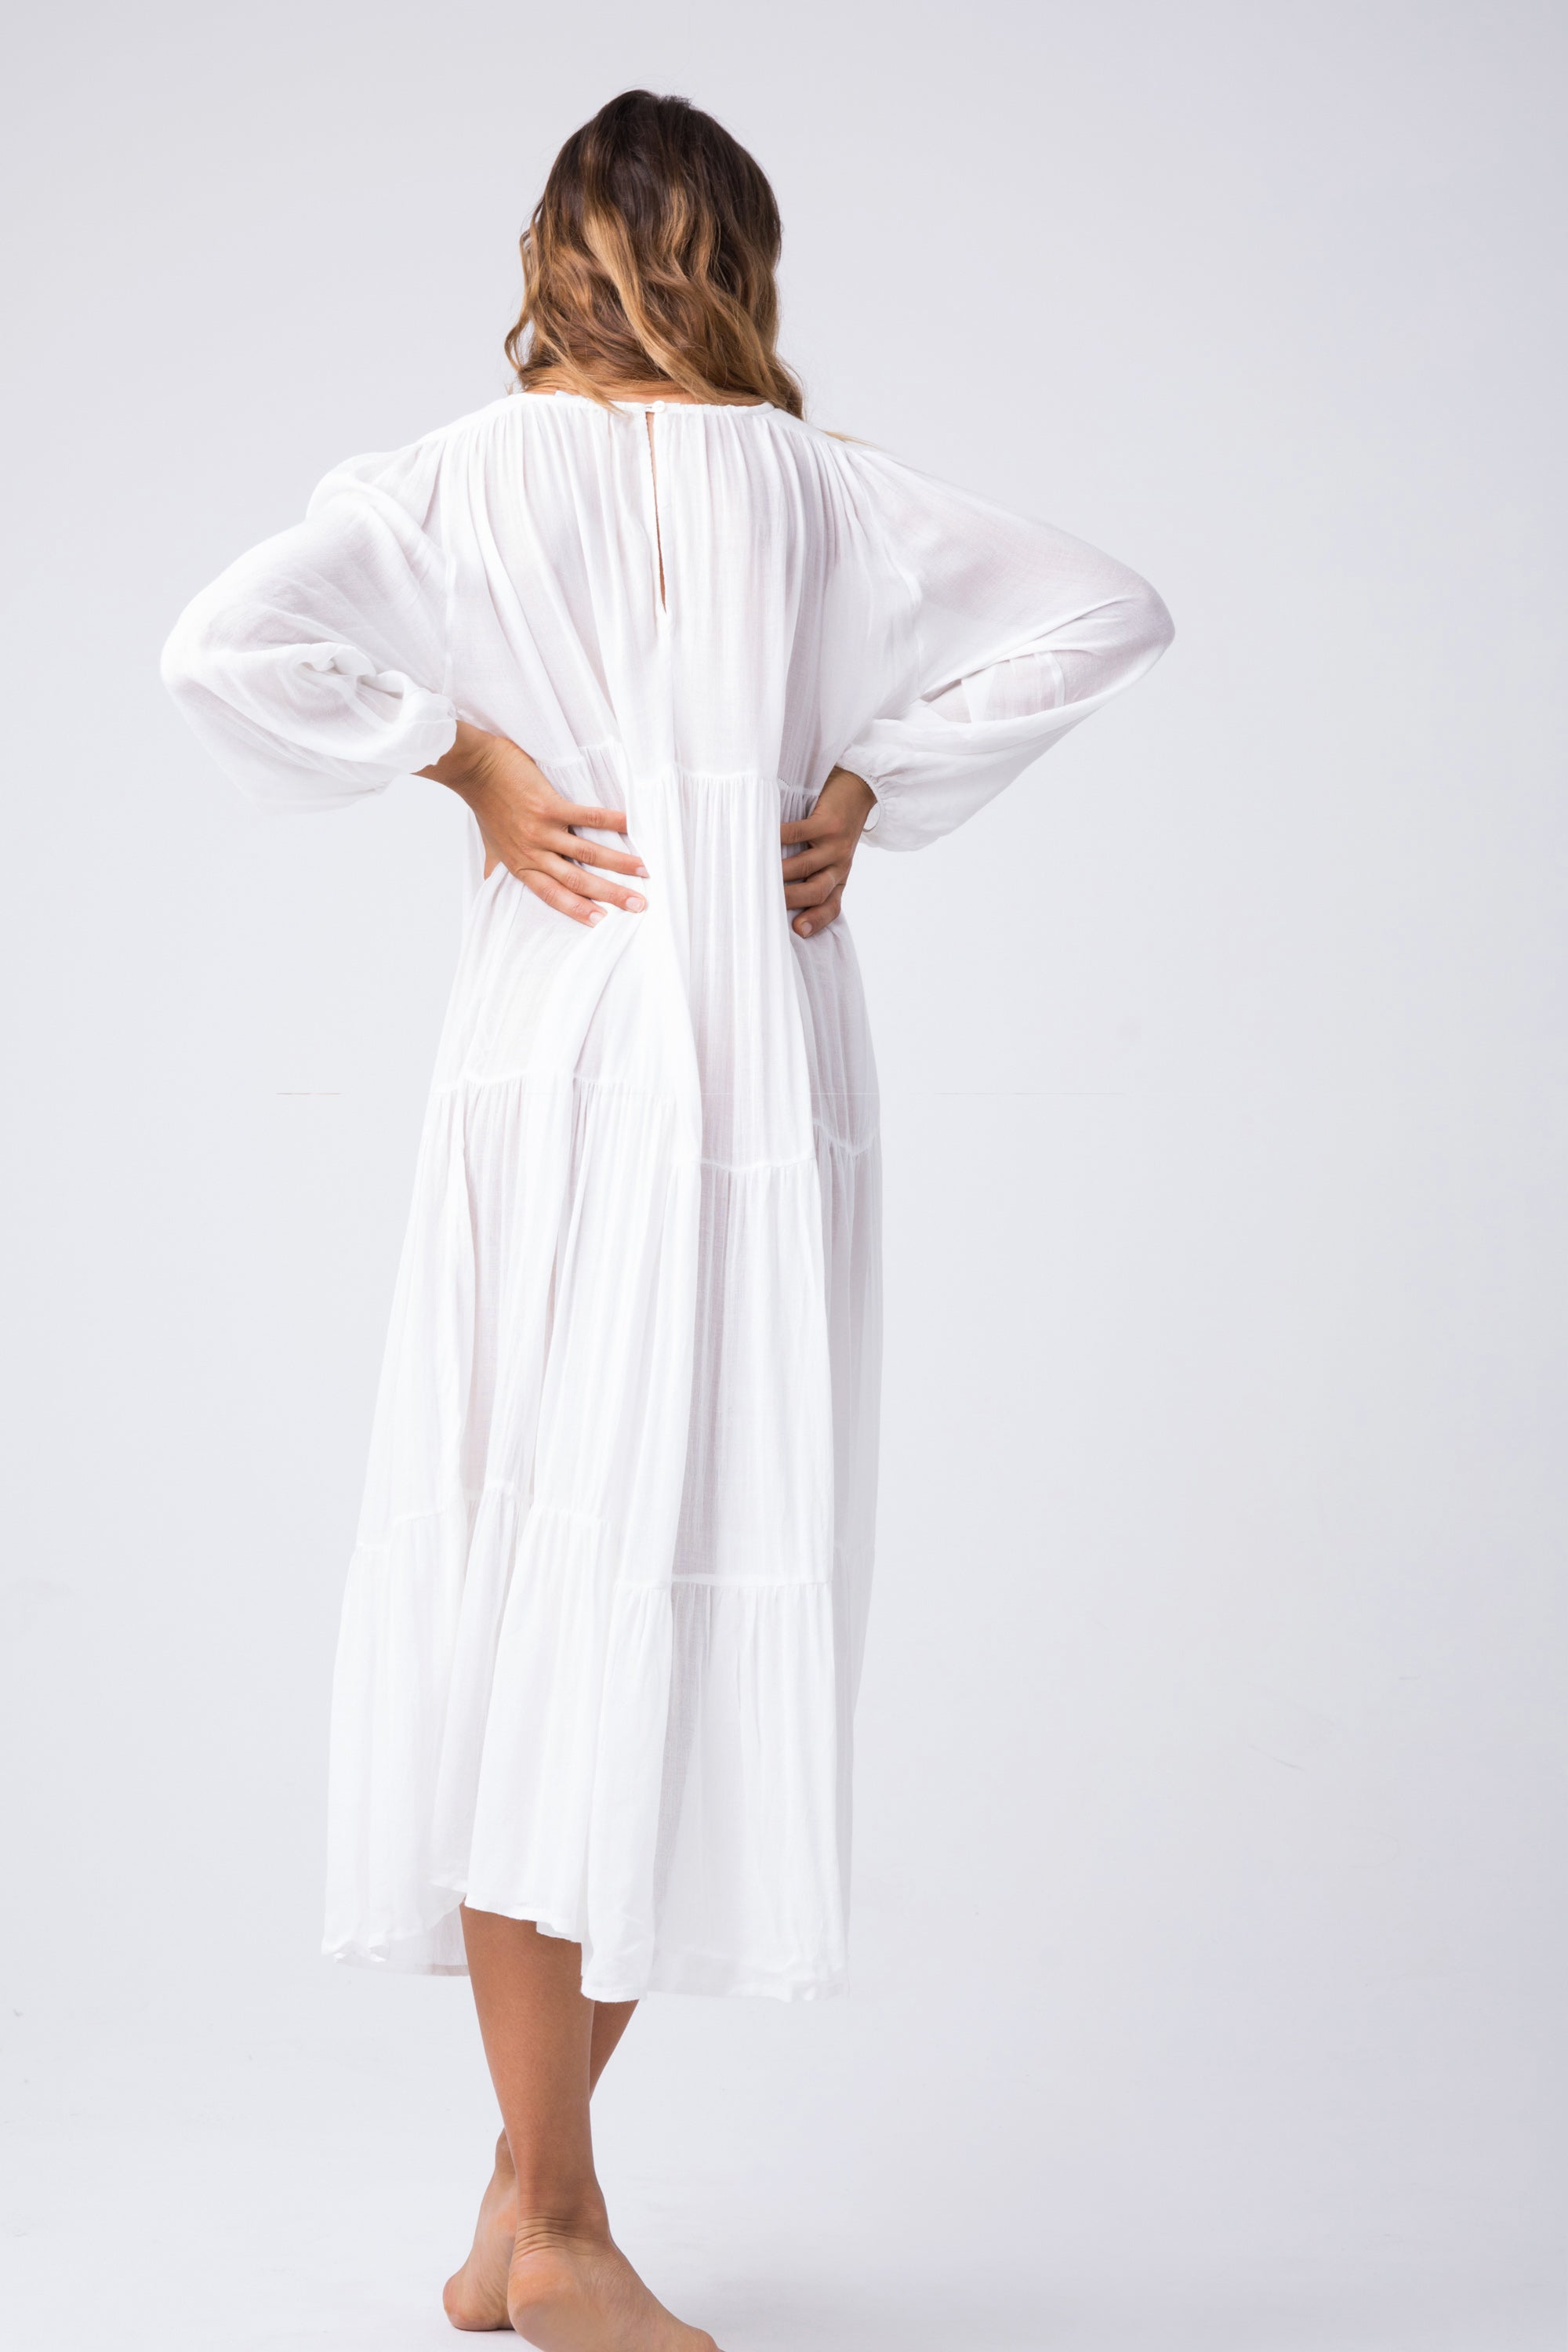 INDAH Belladona Long Sleeve Dress - White Dress | White| Indah Belladonna Long Sleeve Dress - White  Low V neckline with adjustable ties and tassel detail Button closure at the back Wide long sleeves Gathered wrists Three tier construction Hemline about four inches below knee Back Vi